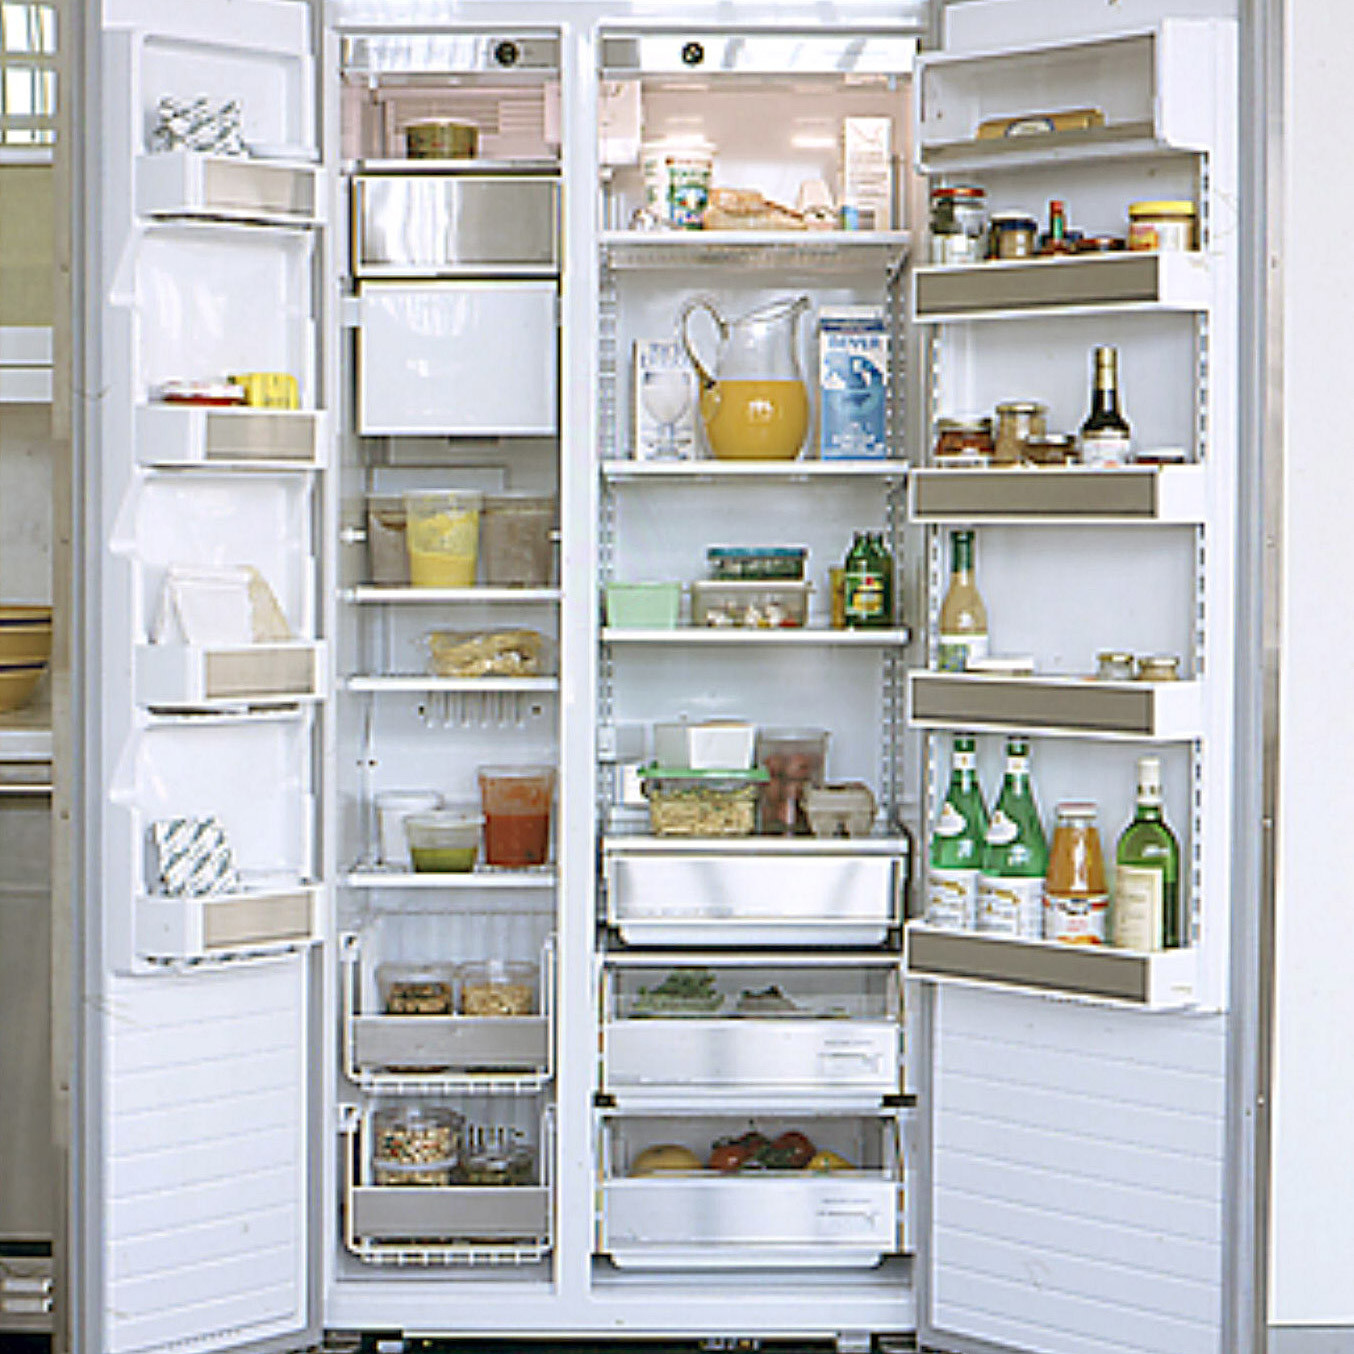 Cleaning Your Fridge Martha Stewart